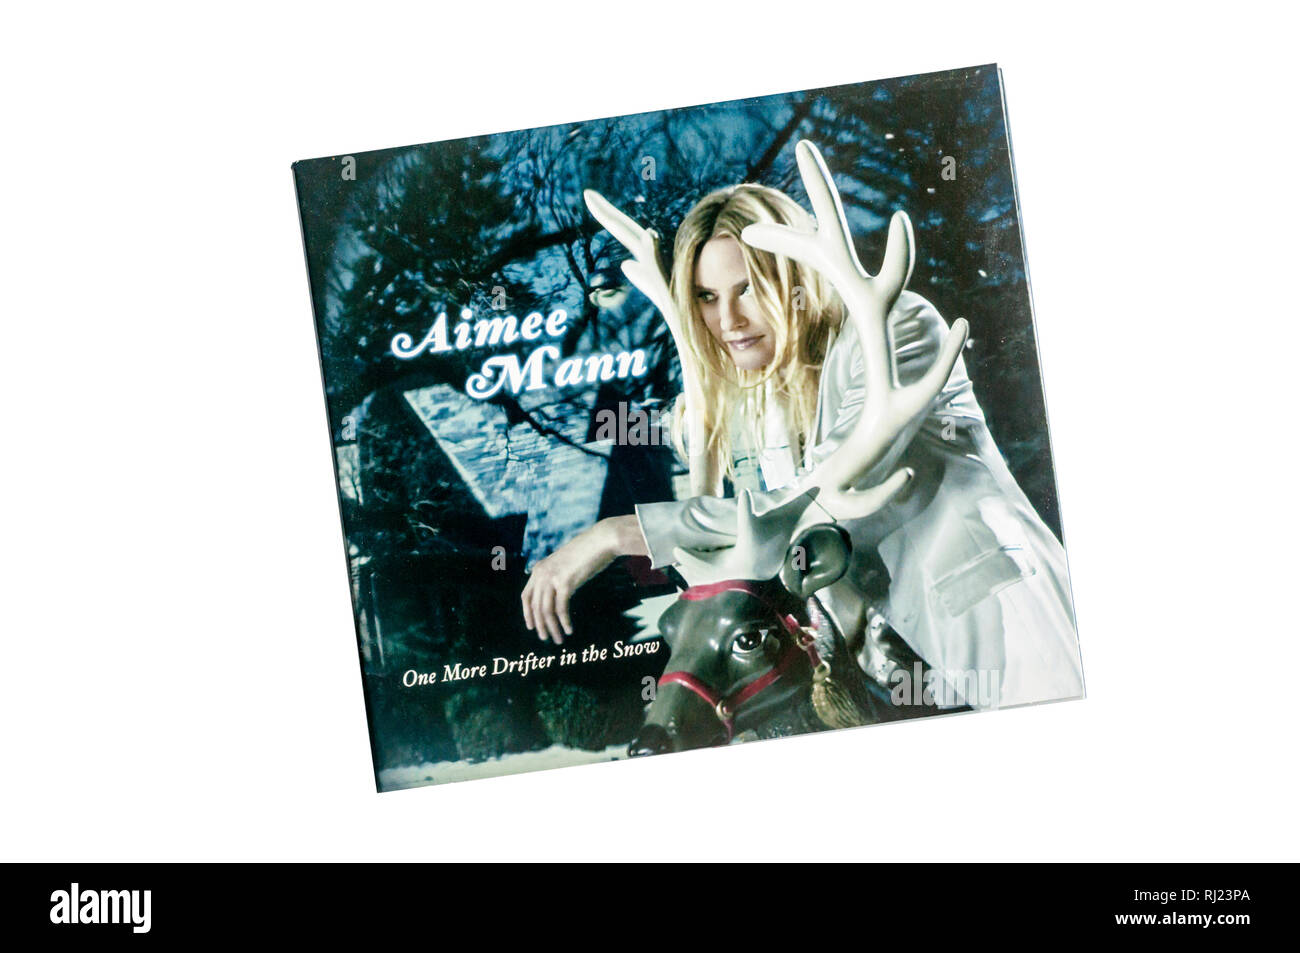 One More Drifter in the Snow was the sixth album by Aimee Mann and her first Christmas album.  Released in 2006. - Stock Image